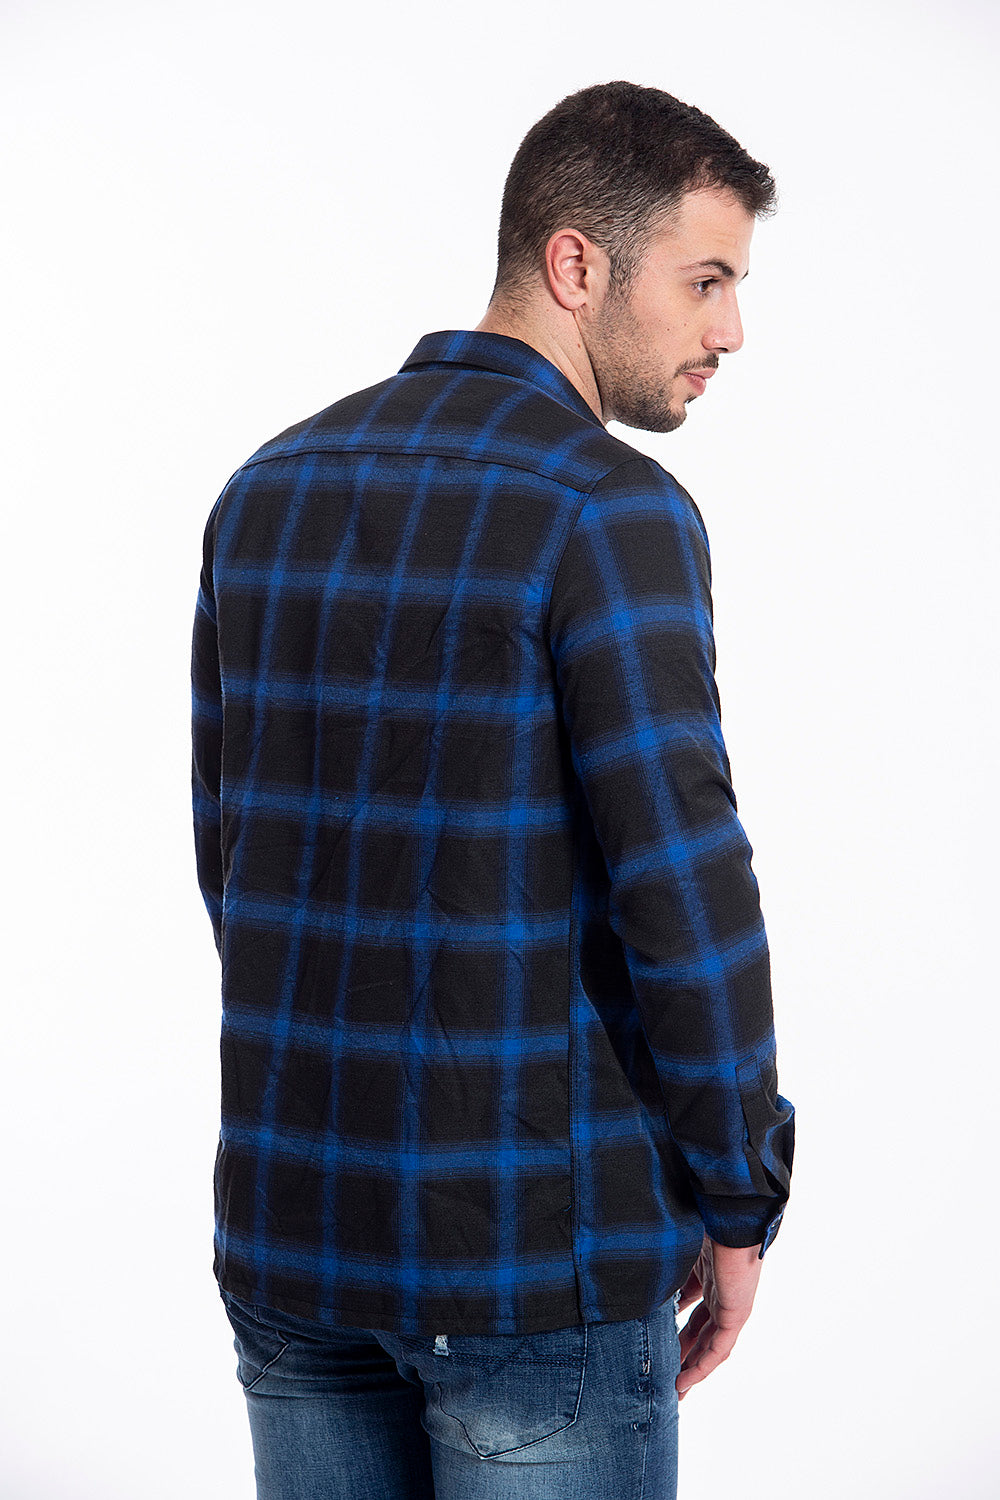 Outcome shirt coat in check pattern and zip